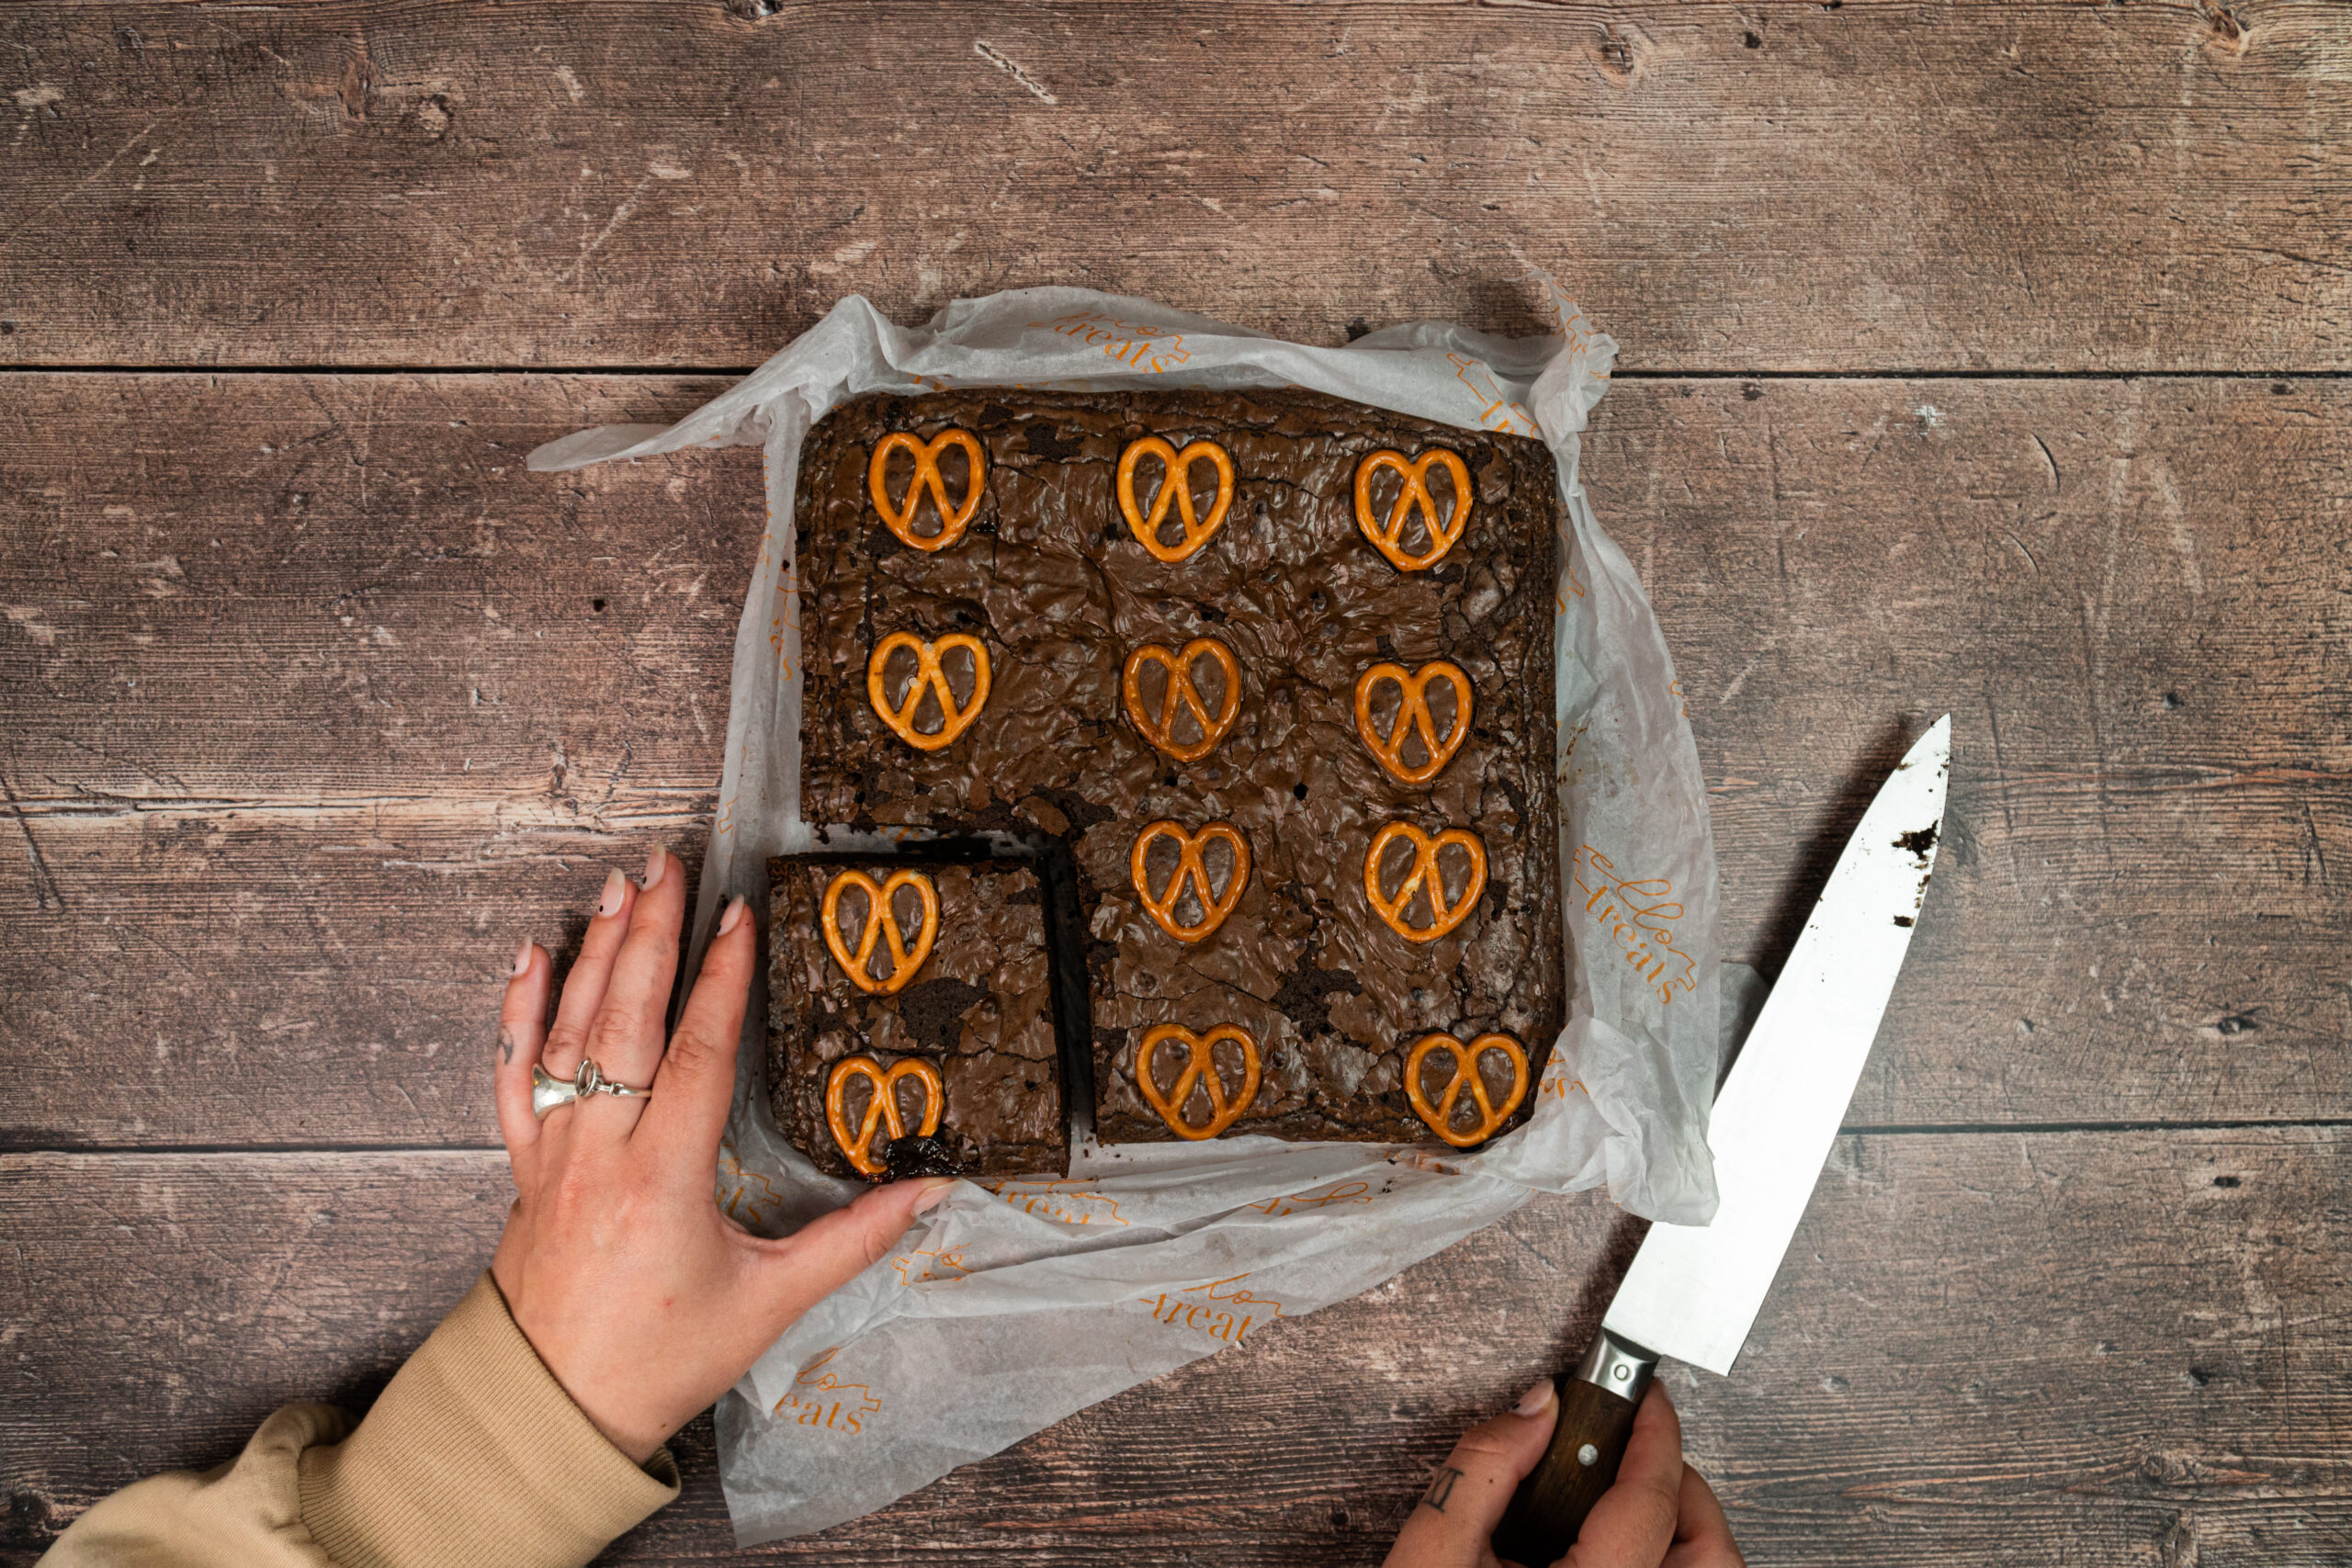 slab of chocolate brownie being cut, topped with pretzel pieces